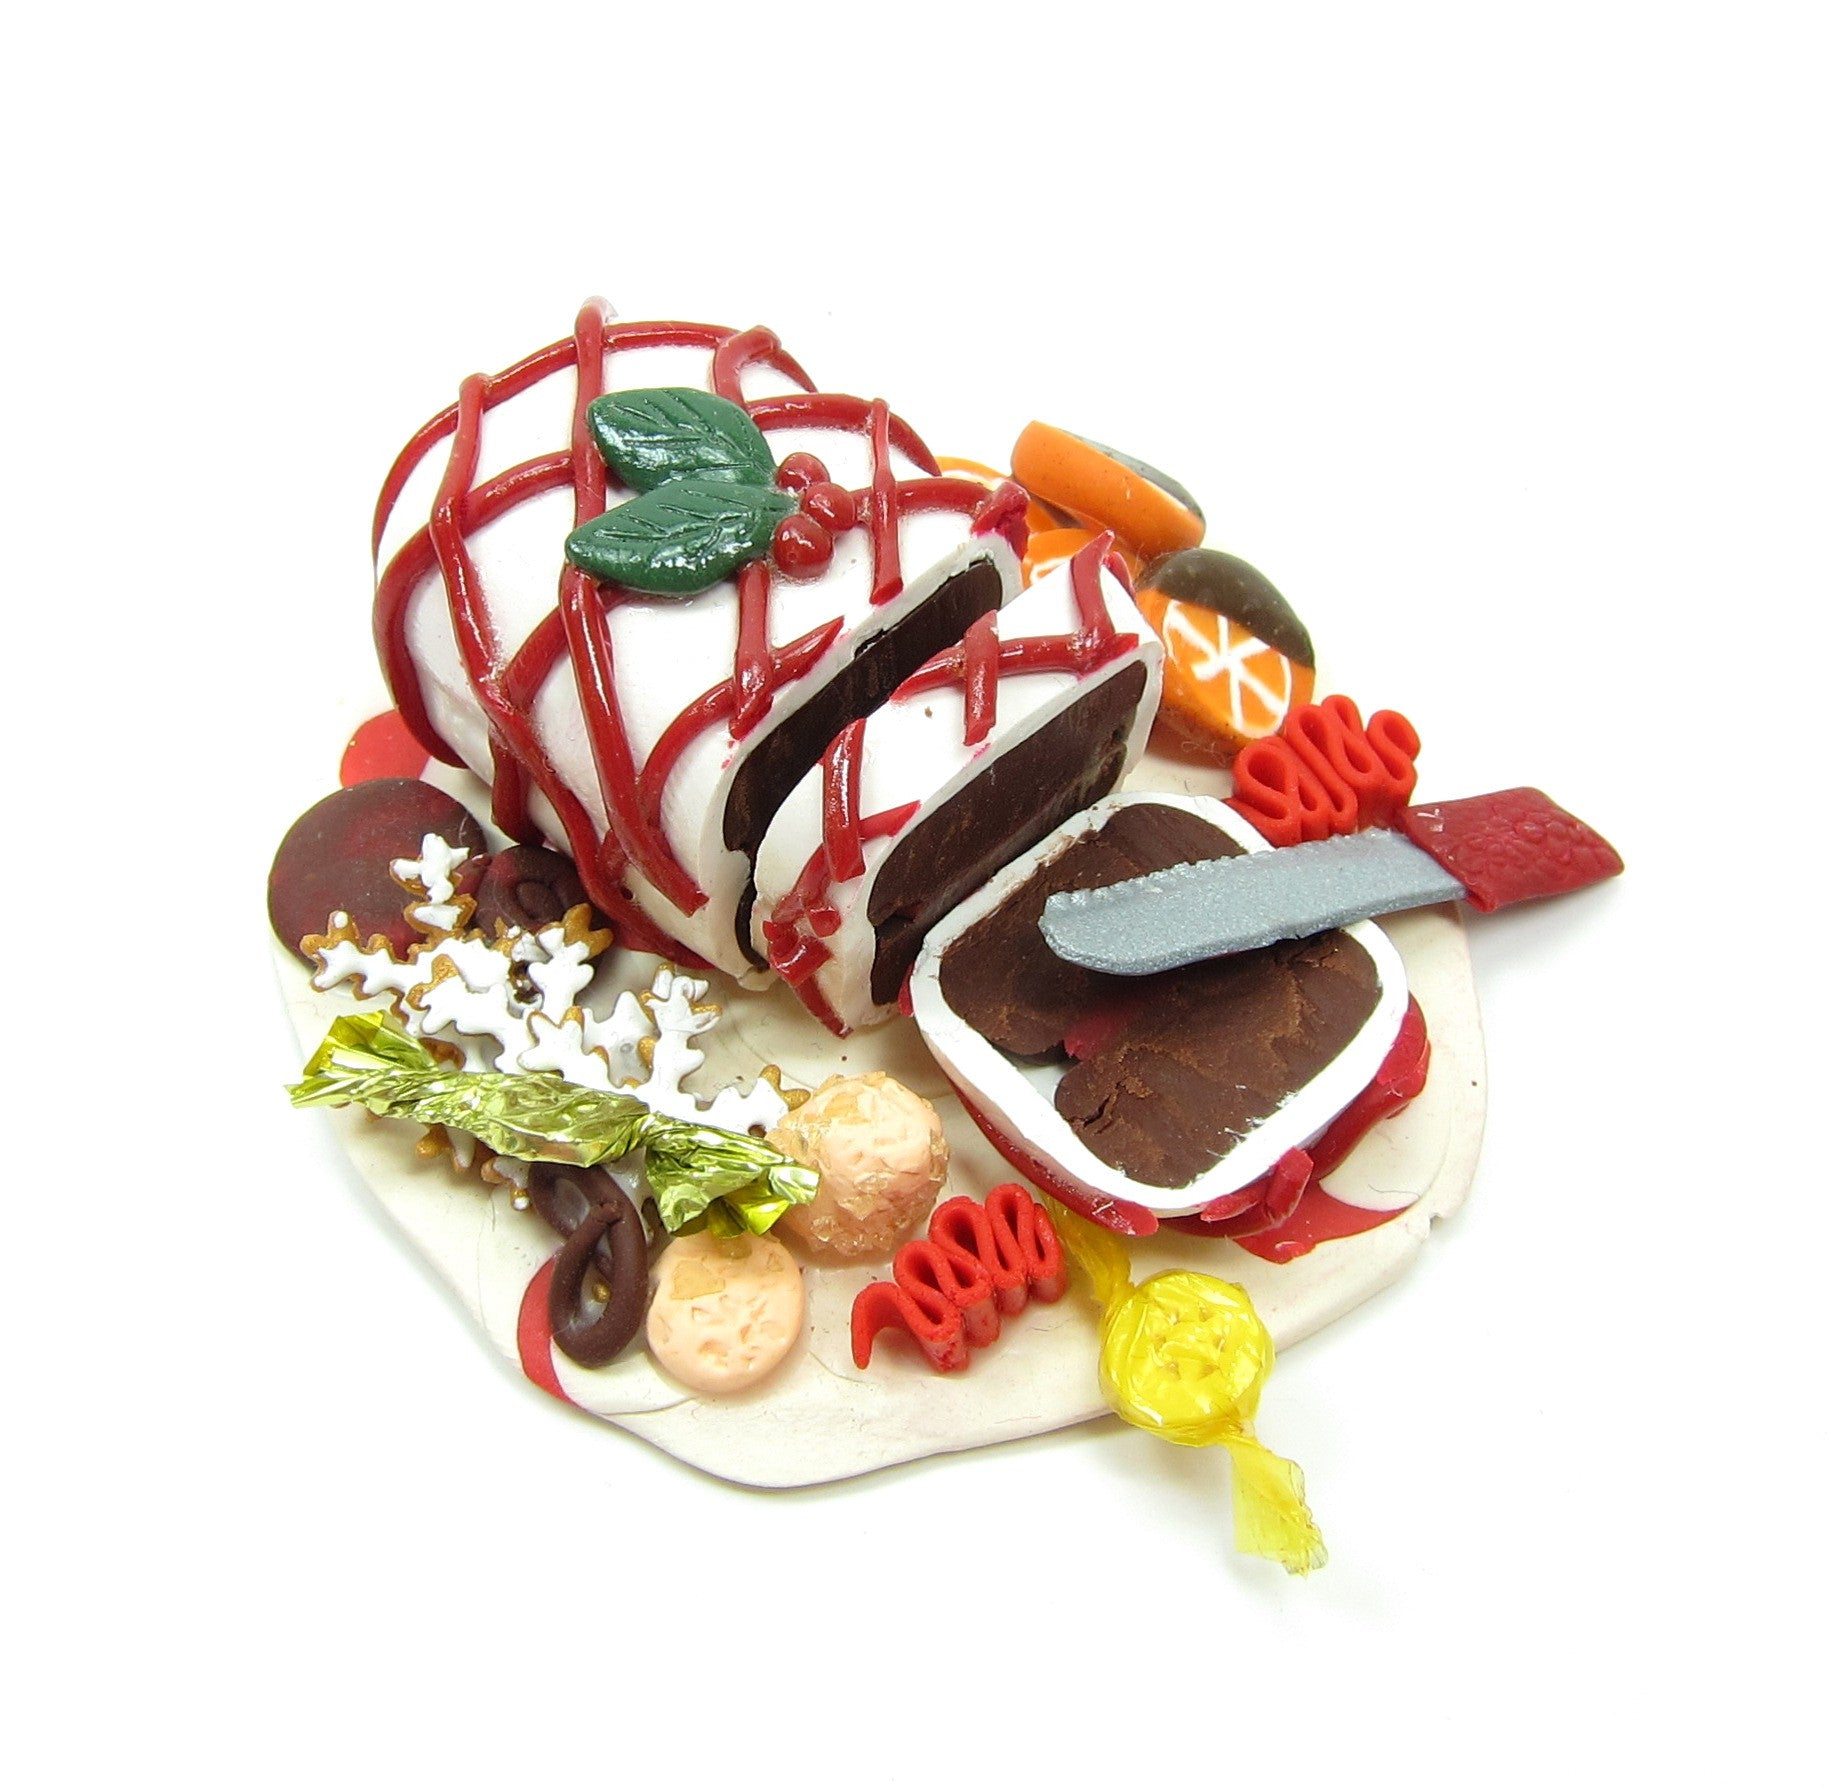 Polymer Clay Christmas Cake Platter with Candies